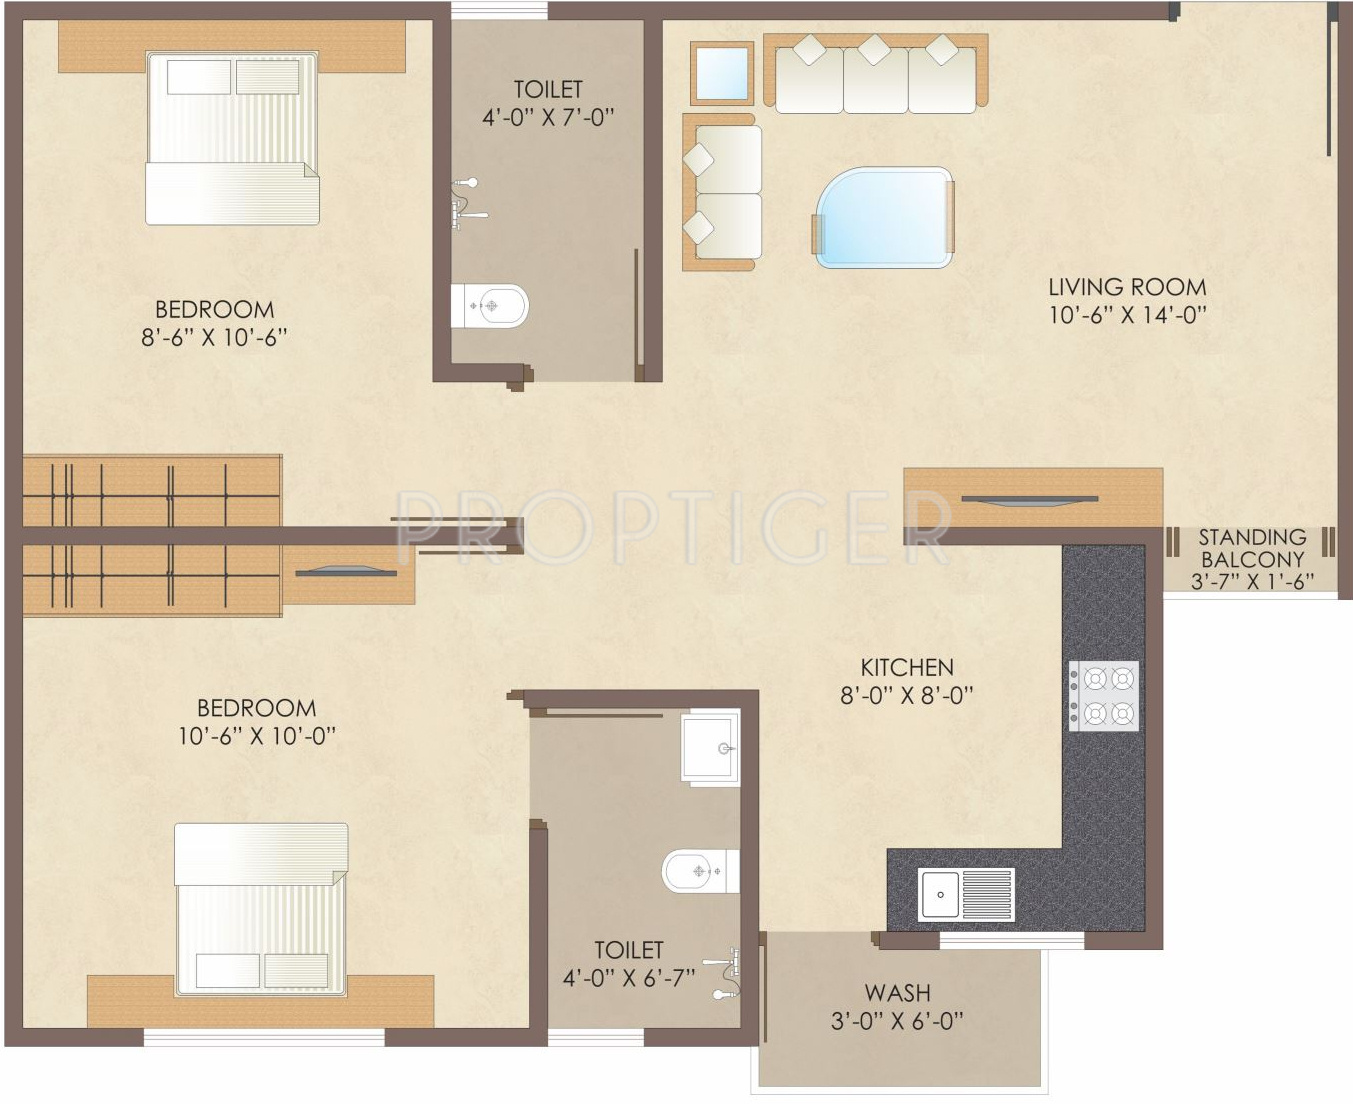 900 Sq Ft Apartment Floor Plan – Villas At Fortune Place Floor Plan